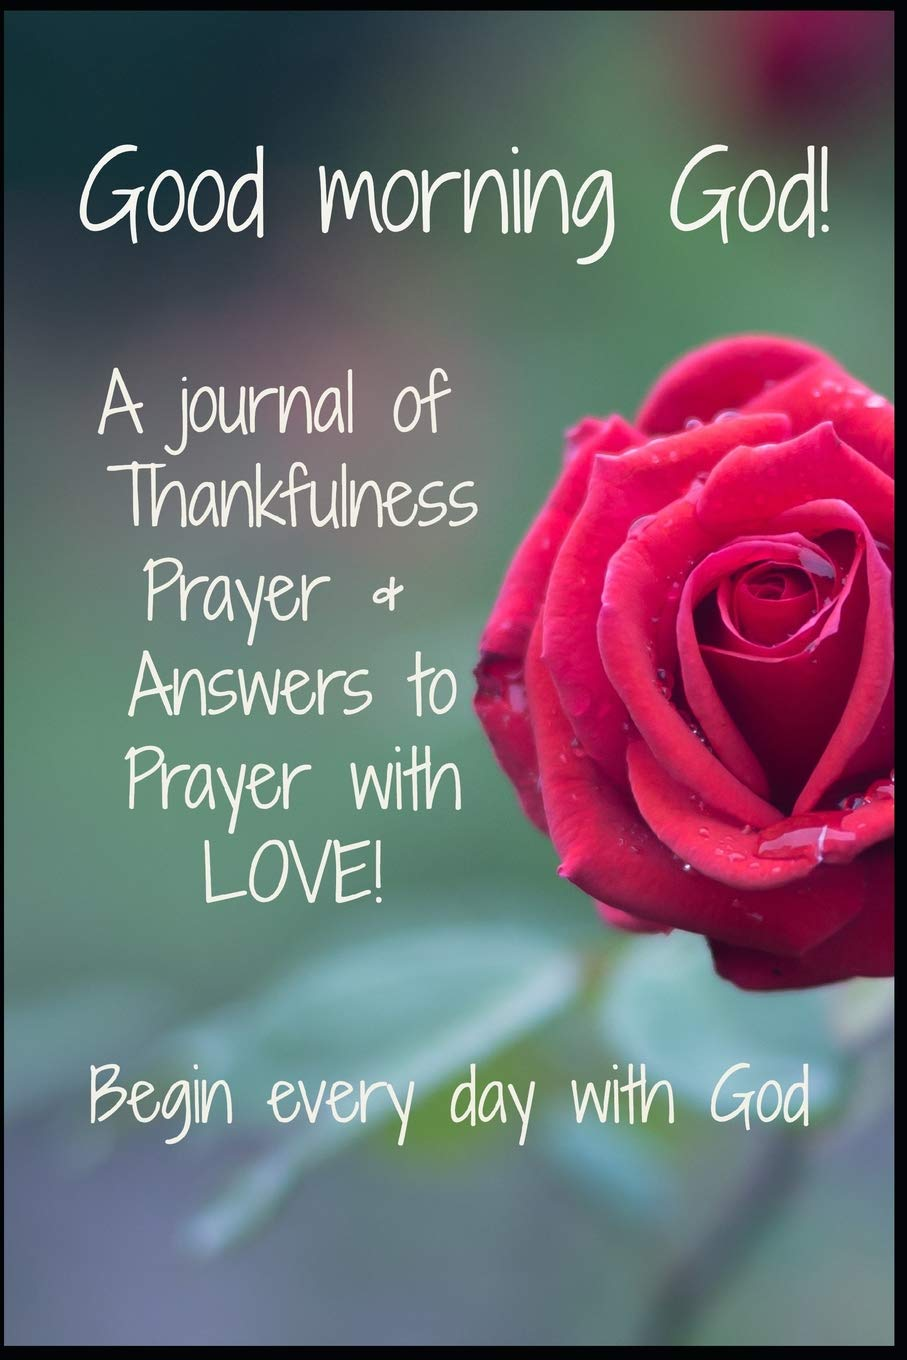 Good Morning God A Journal Of Thankfulness Prayer Answers To Prayer With Love A Prayer Journal Of God S Ability And Promise To Listen To Our Prayers Dee Mo 9781798245583 Amazon Com Books